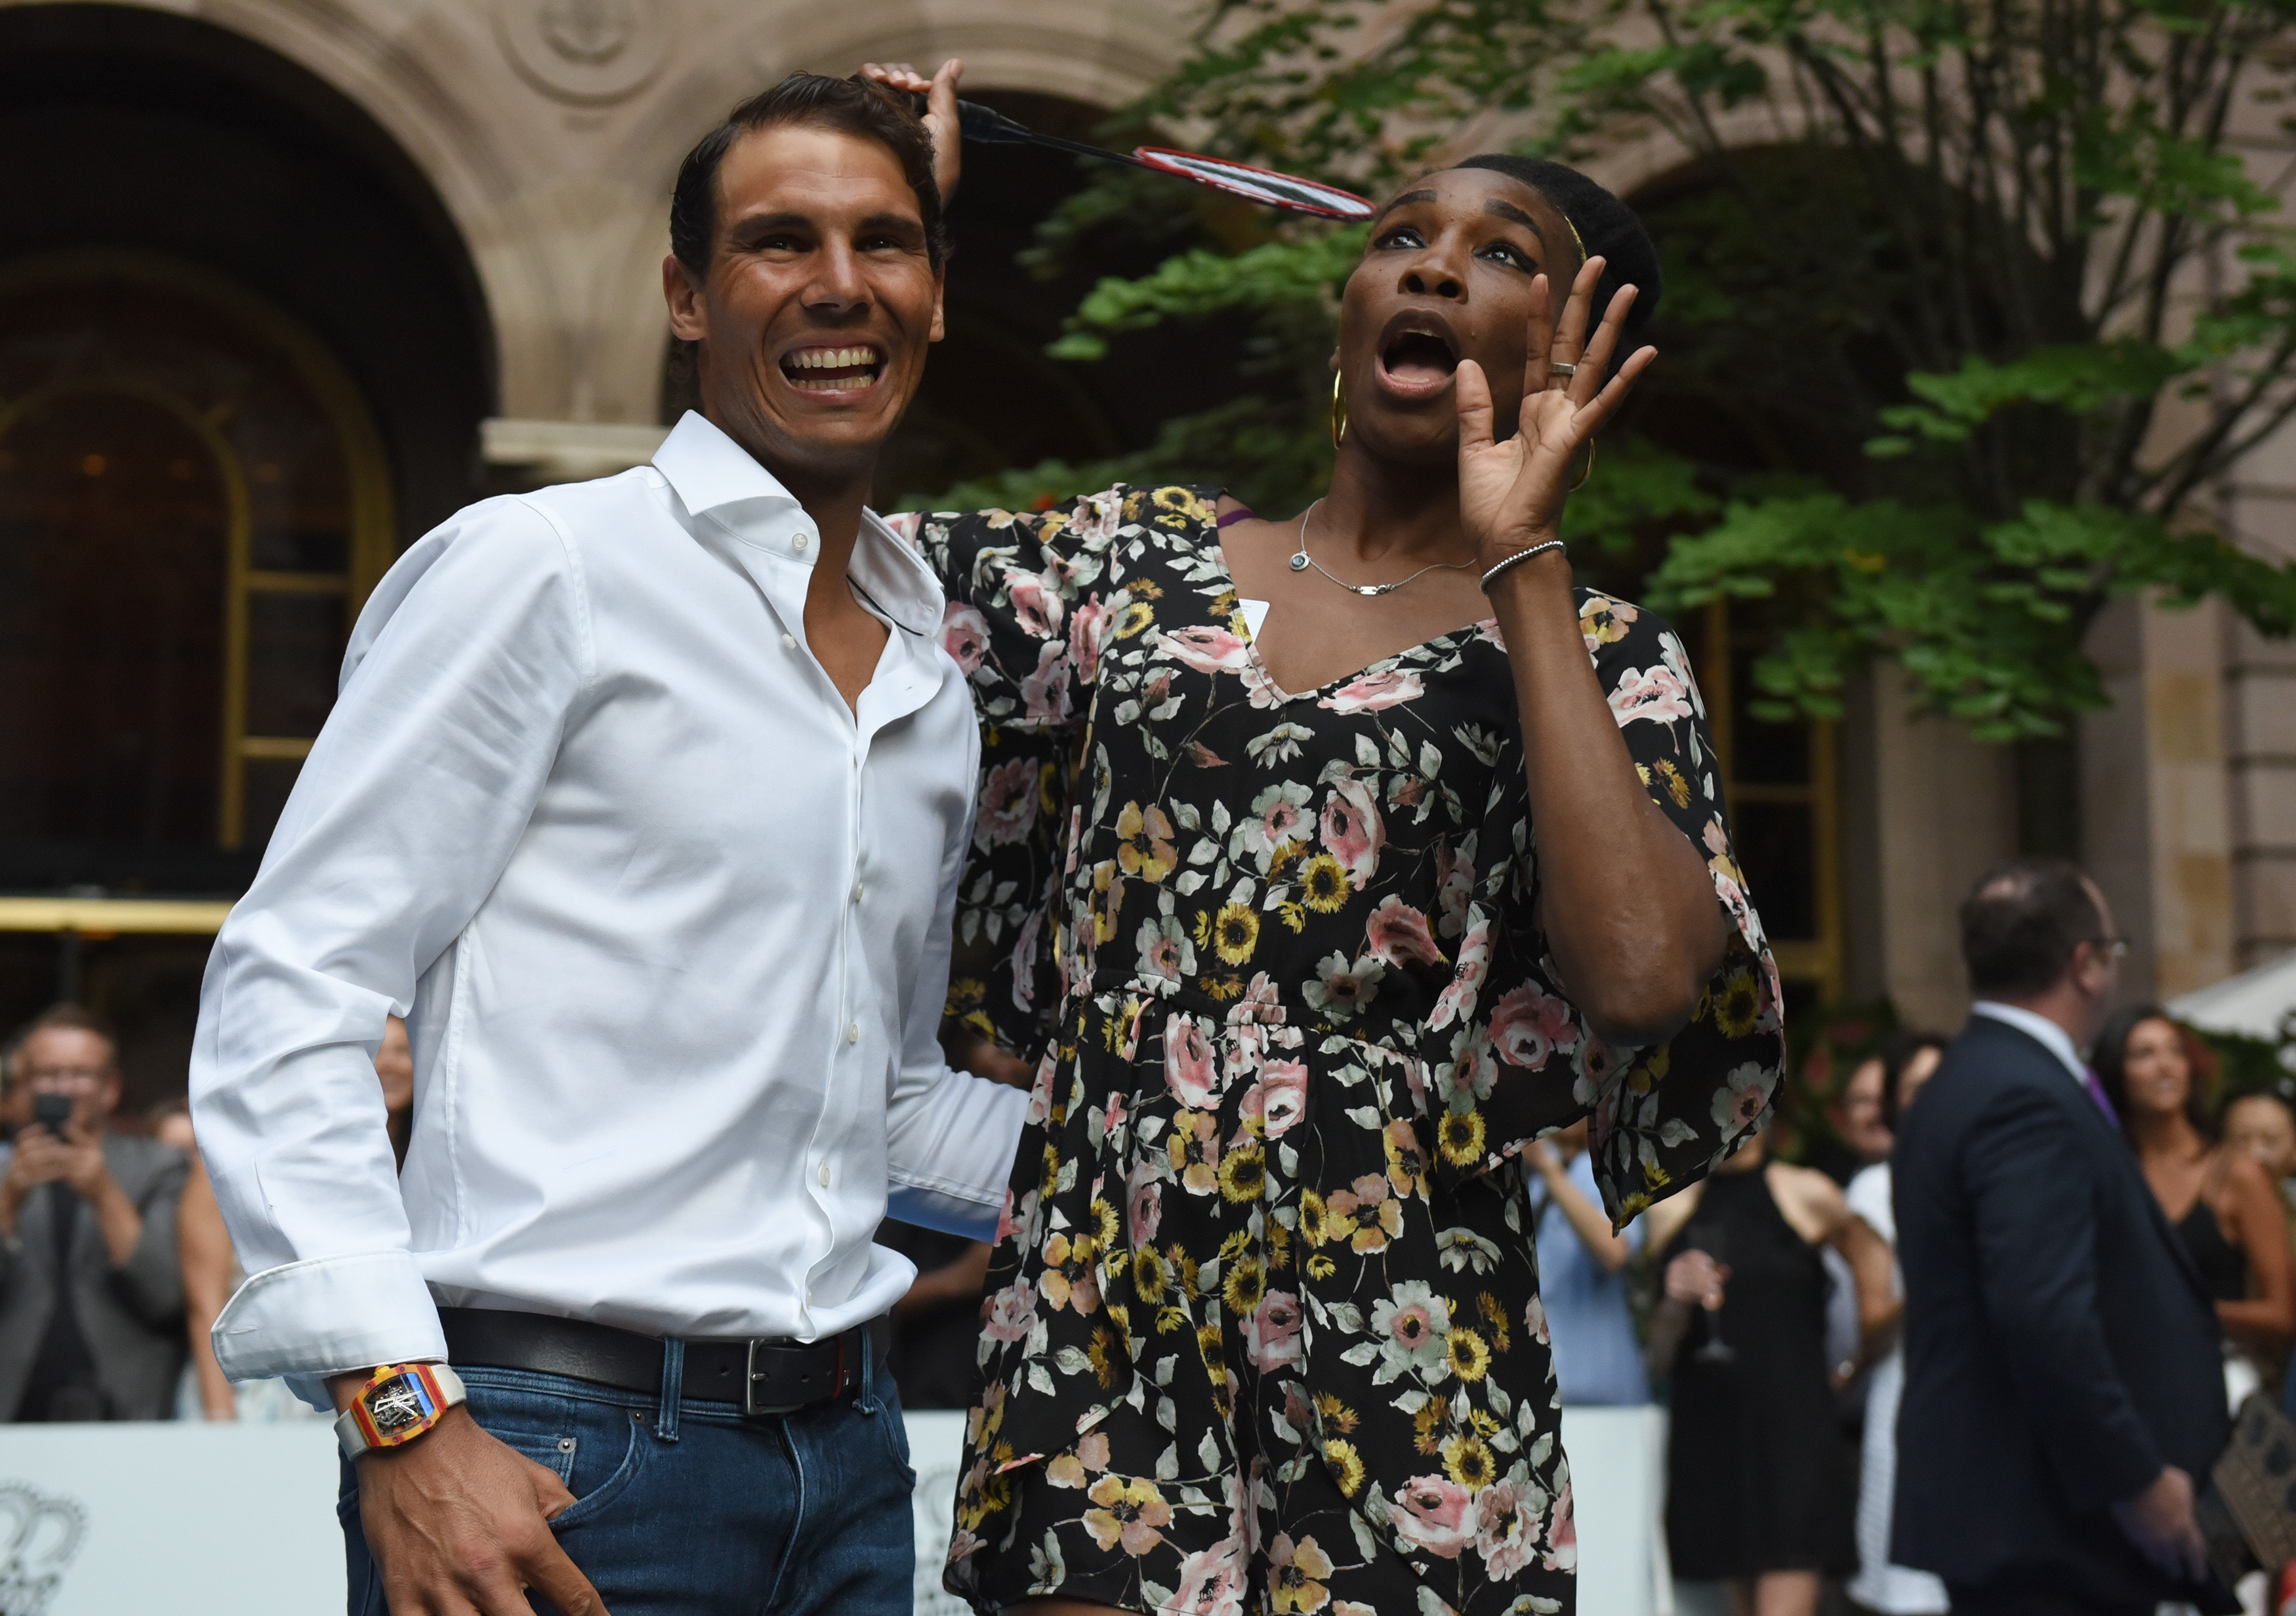 Venus Williams of the USA stands with world number one tennis player Rafael Nadal of Spain following their match in the Lotte New York Palace Invitational Badminton Tournament at the Lotte New York Palace in New York August 24, 2017. / AFP PHOTO / TIMOTHY A. CLARY        (Photo credit should read TIMOTHY A. CLARY/AFP/Getty Images)